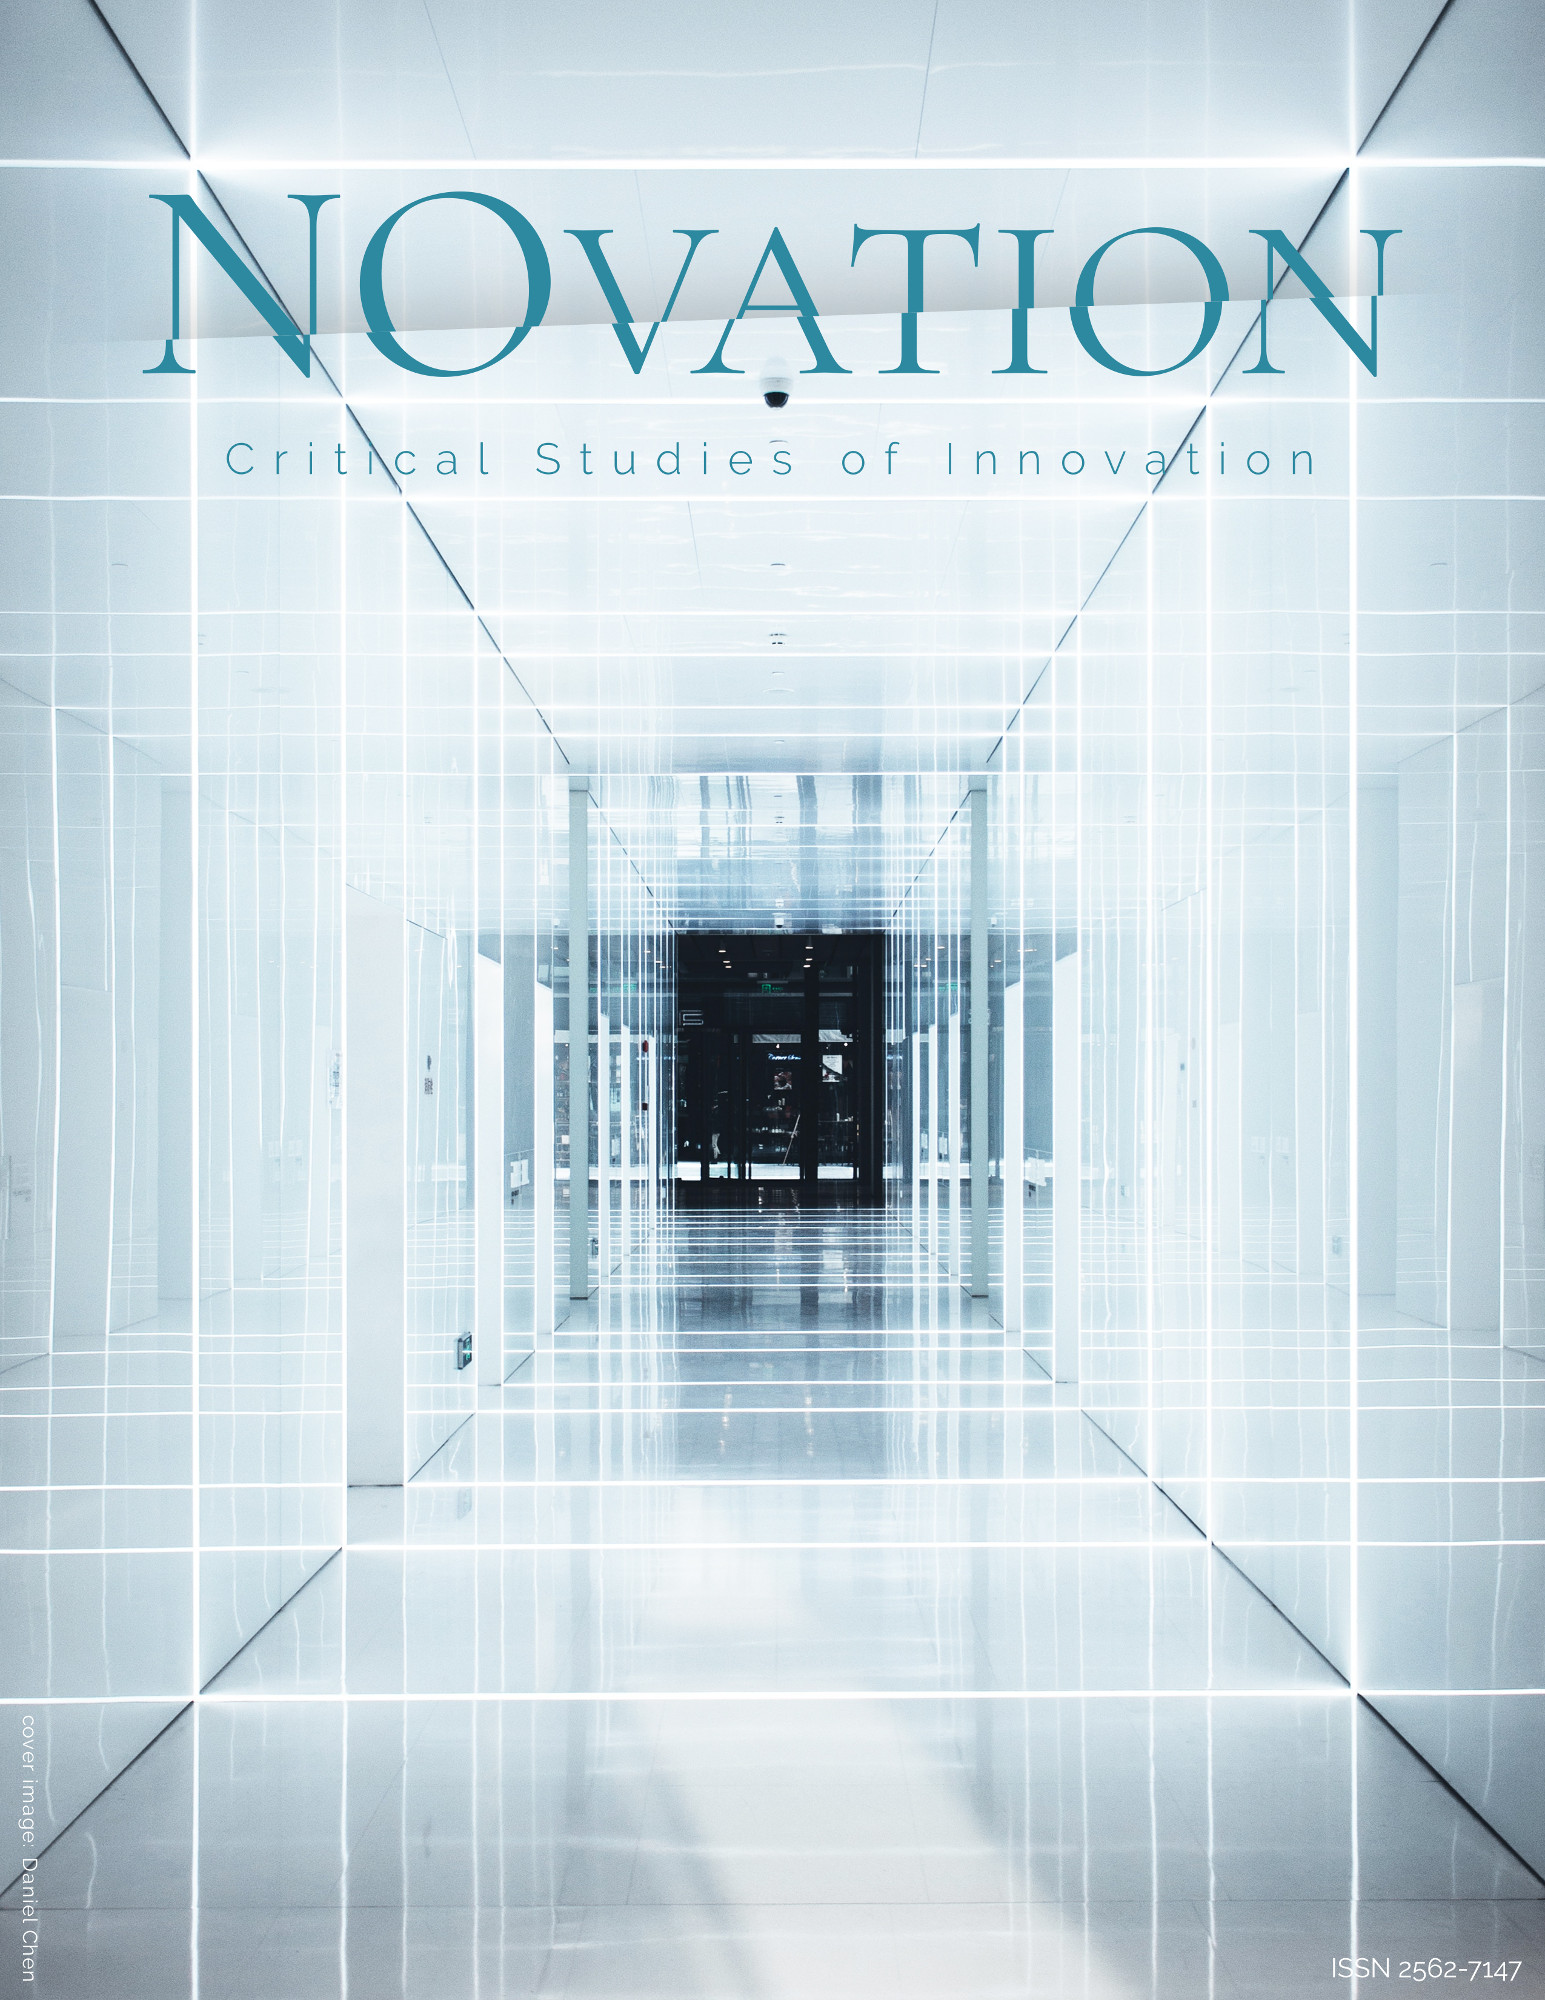 Innovation Studies